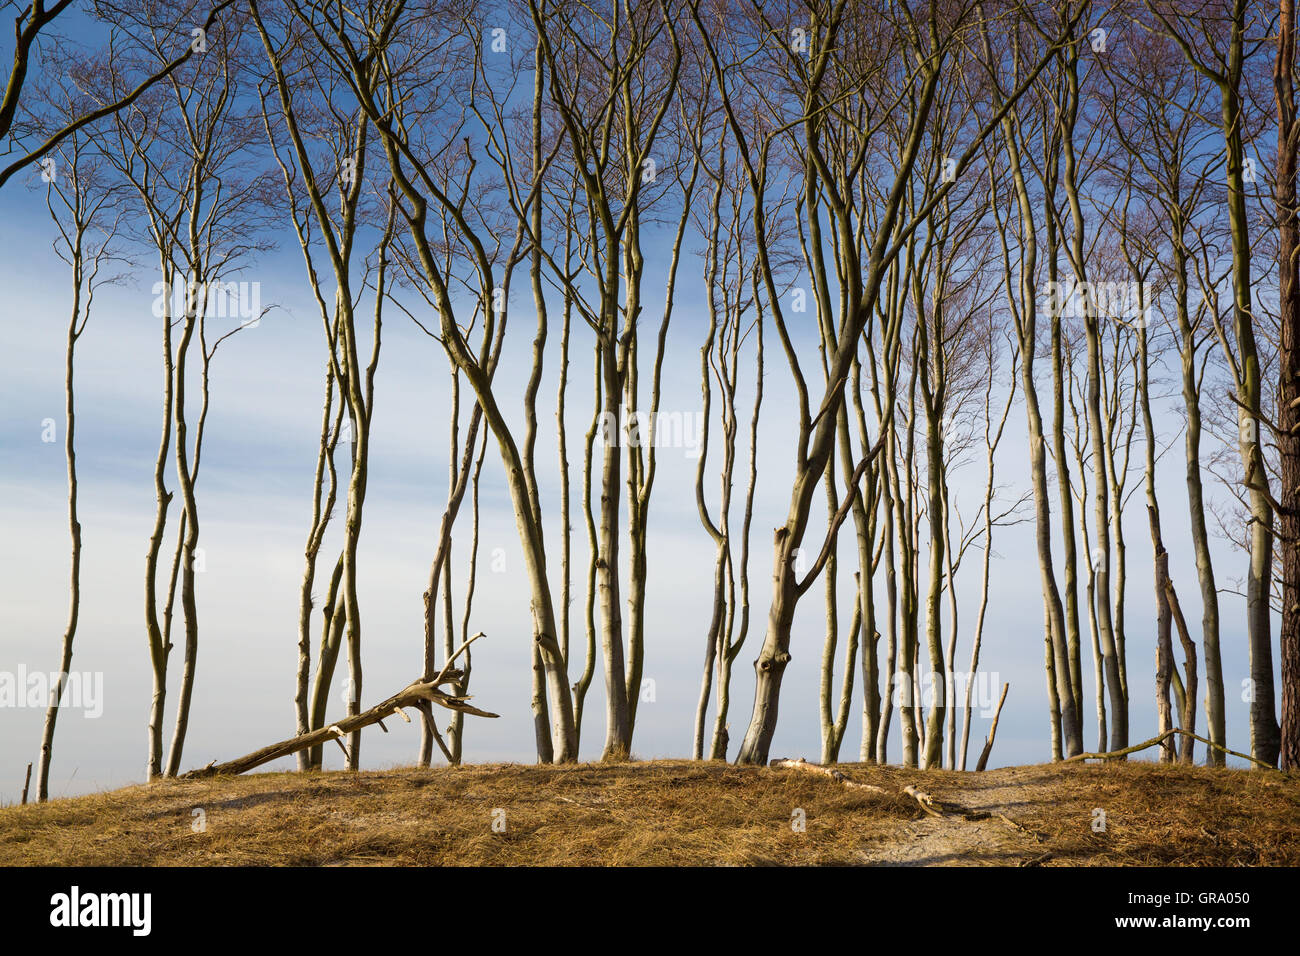 Typical Trees On The Island Darss - Stock Image